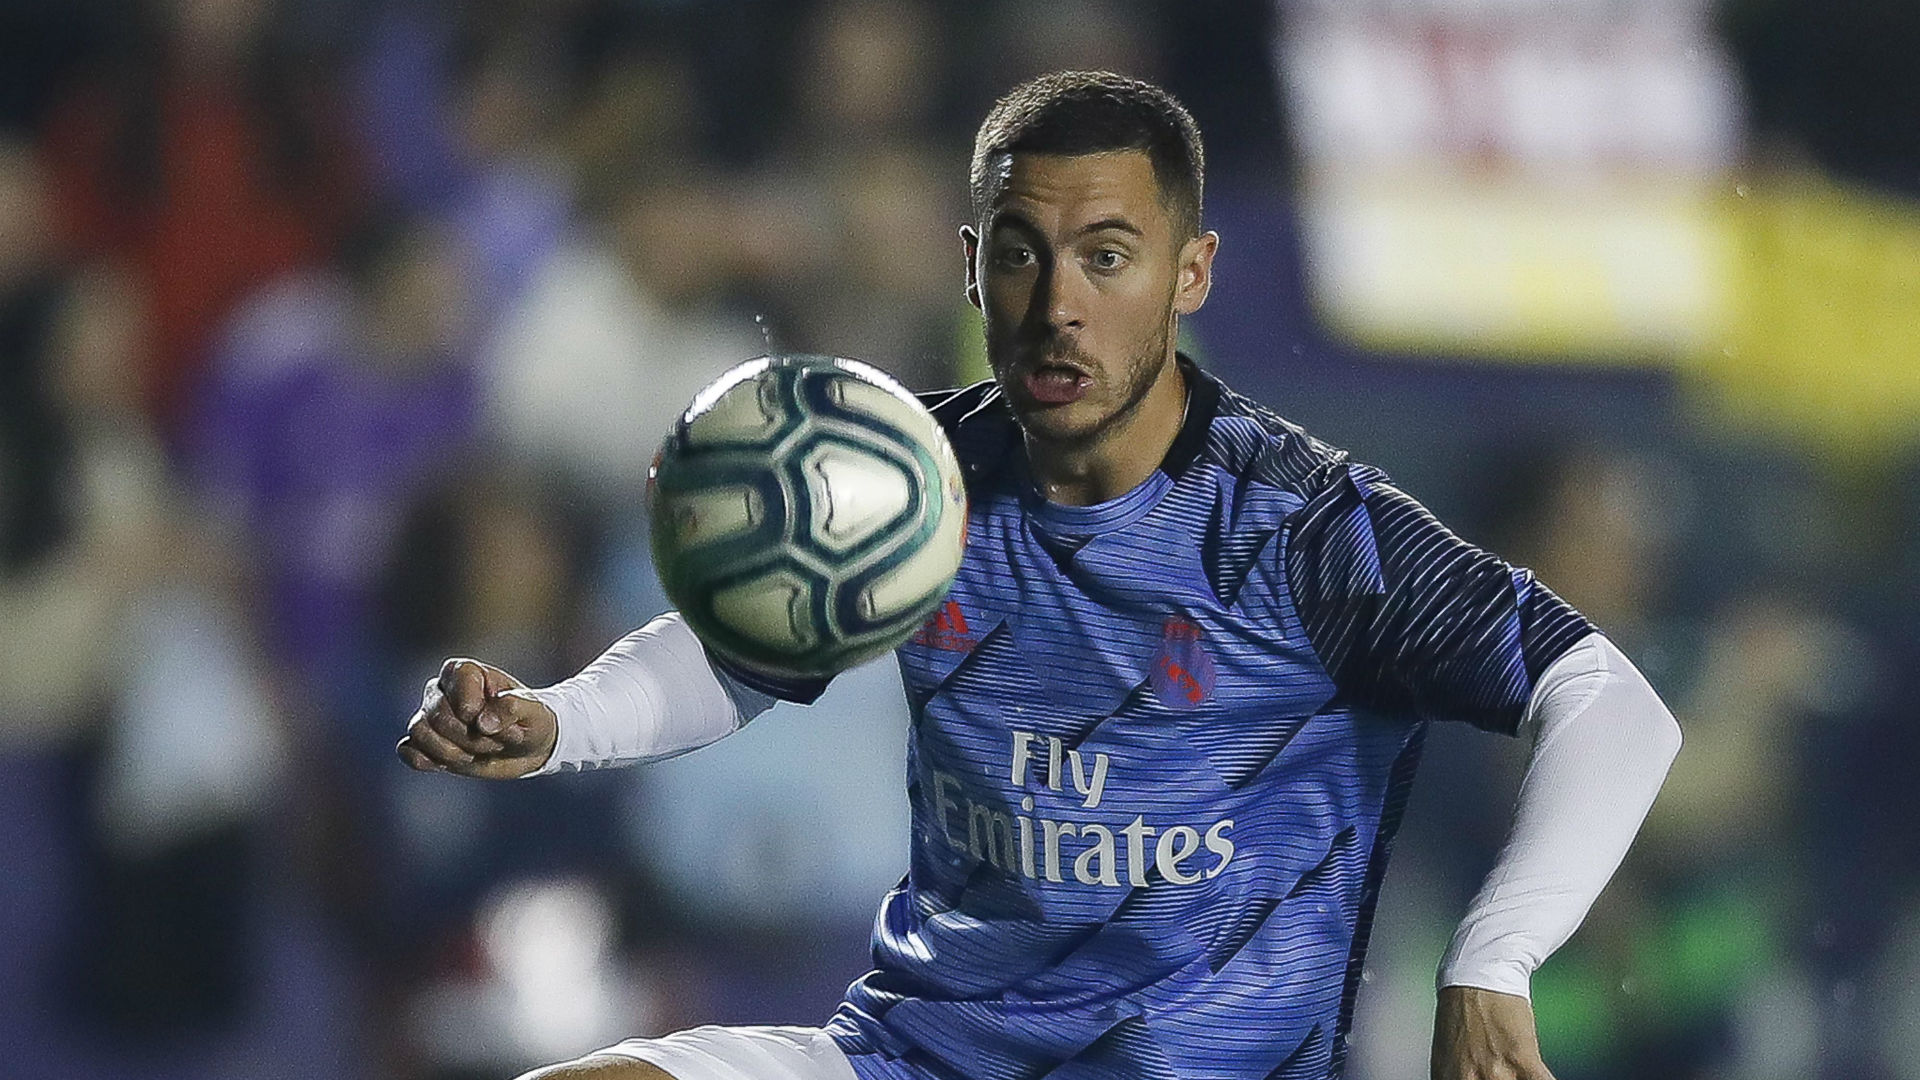 Madrid star Hazard needs more physical work to recover from broken ankle